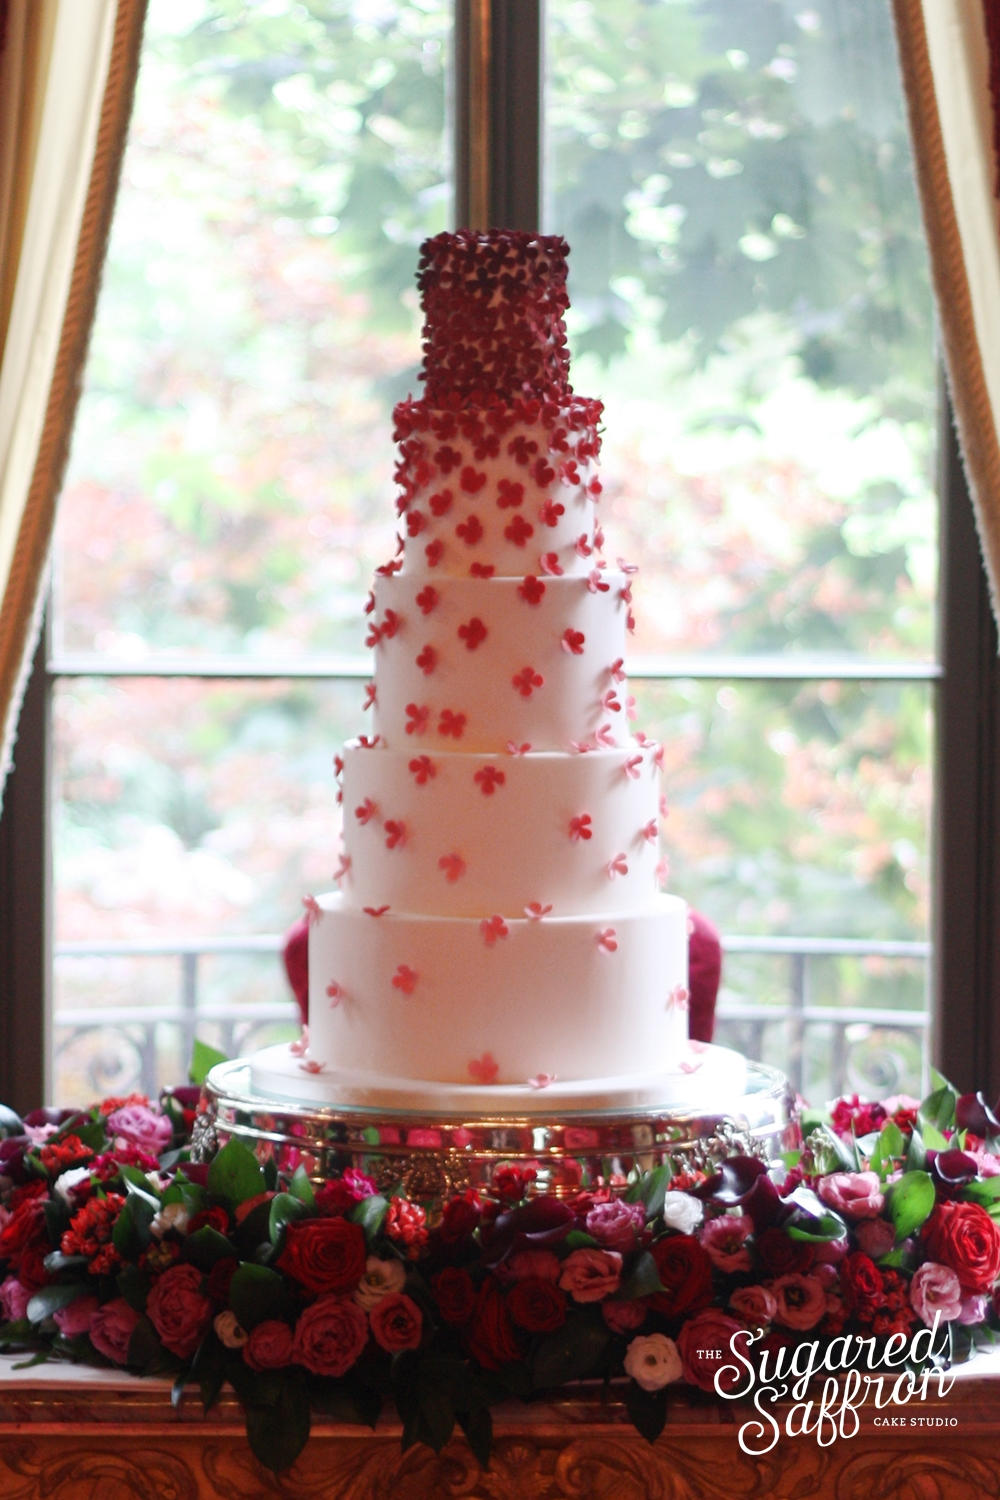 Wedding cake at the ritz in red luxury sugared saffron